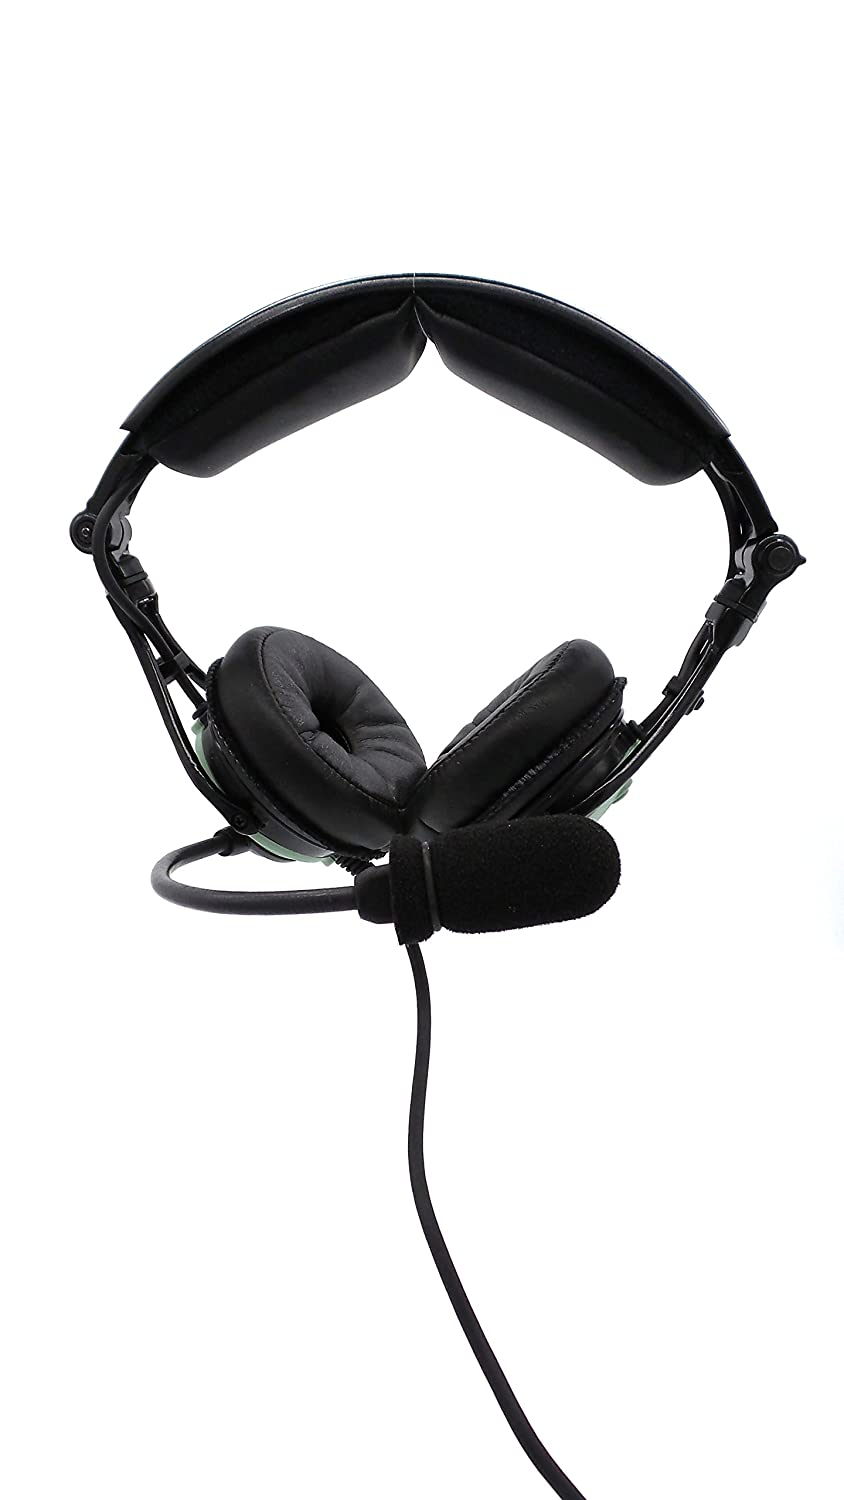 Amazon.com: David Clark DC PRO-X Hybrid Electronic Noise-Cancelling  Aviation Headset: GPS & Navigation